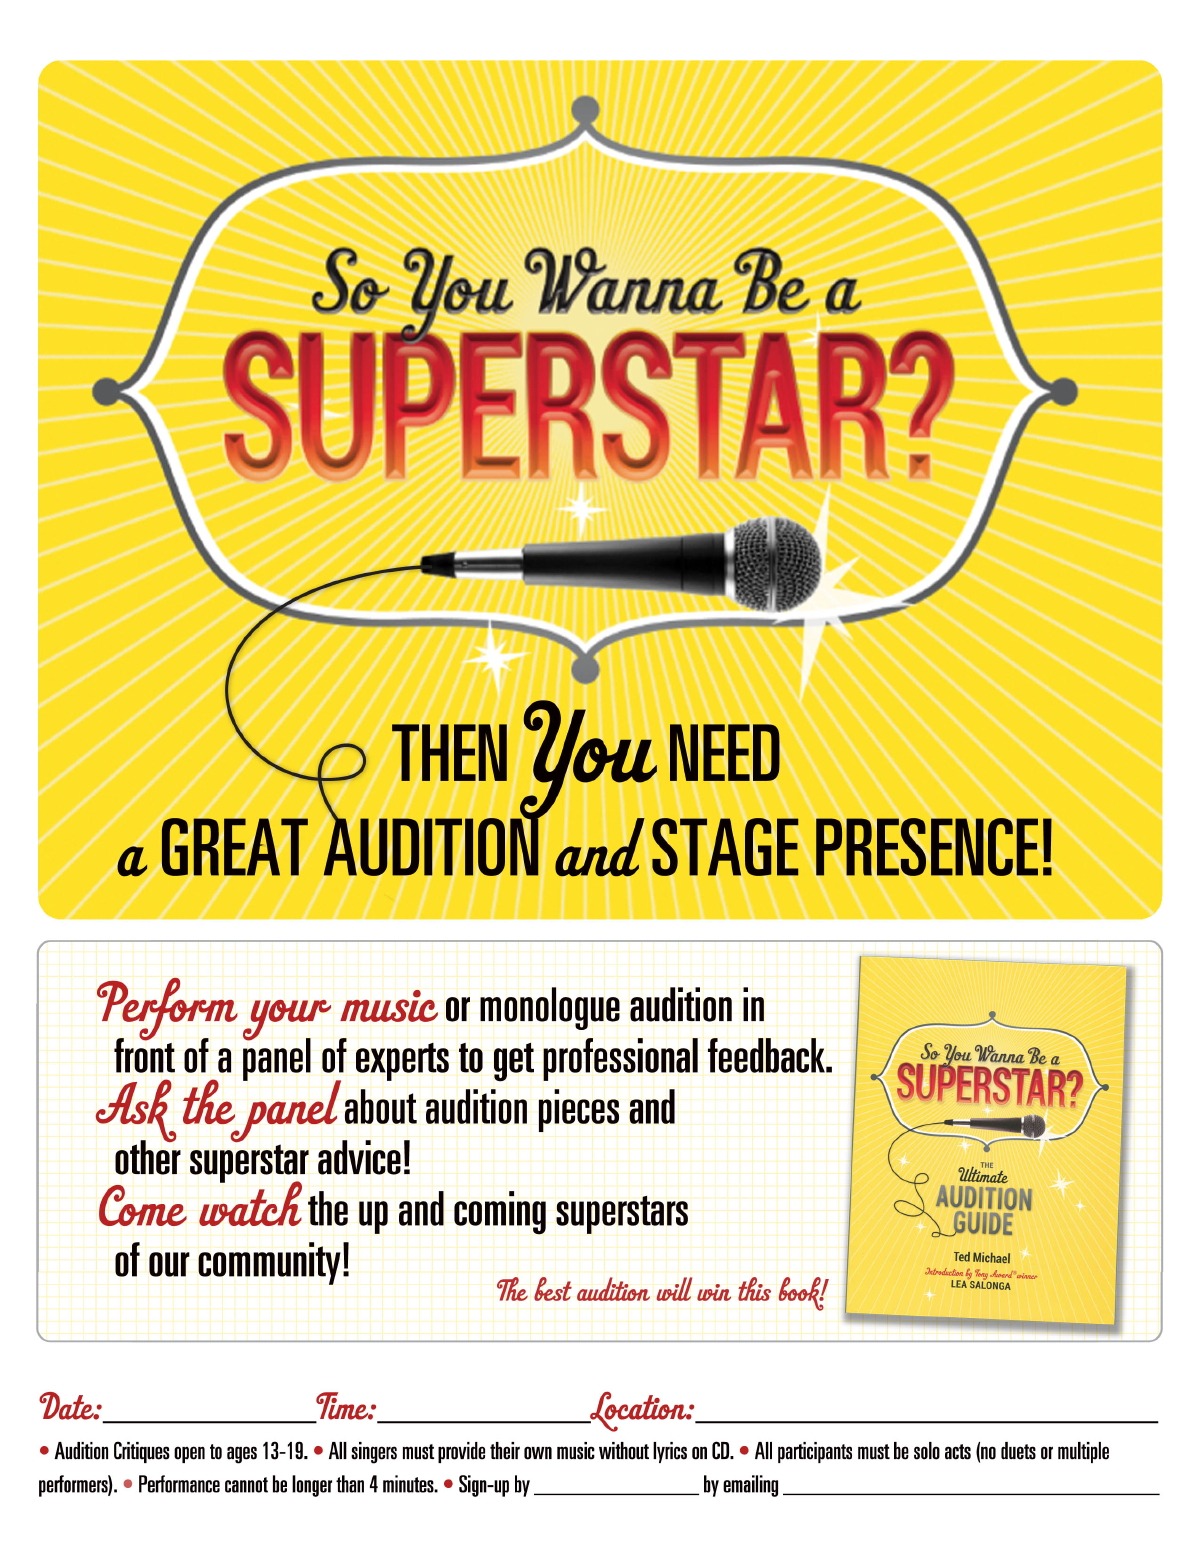 So You Wanna Be A Superstar Audition Event Kit For Libraries